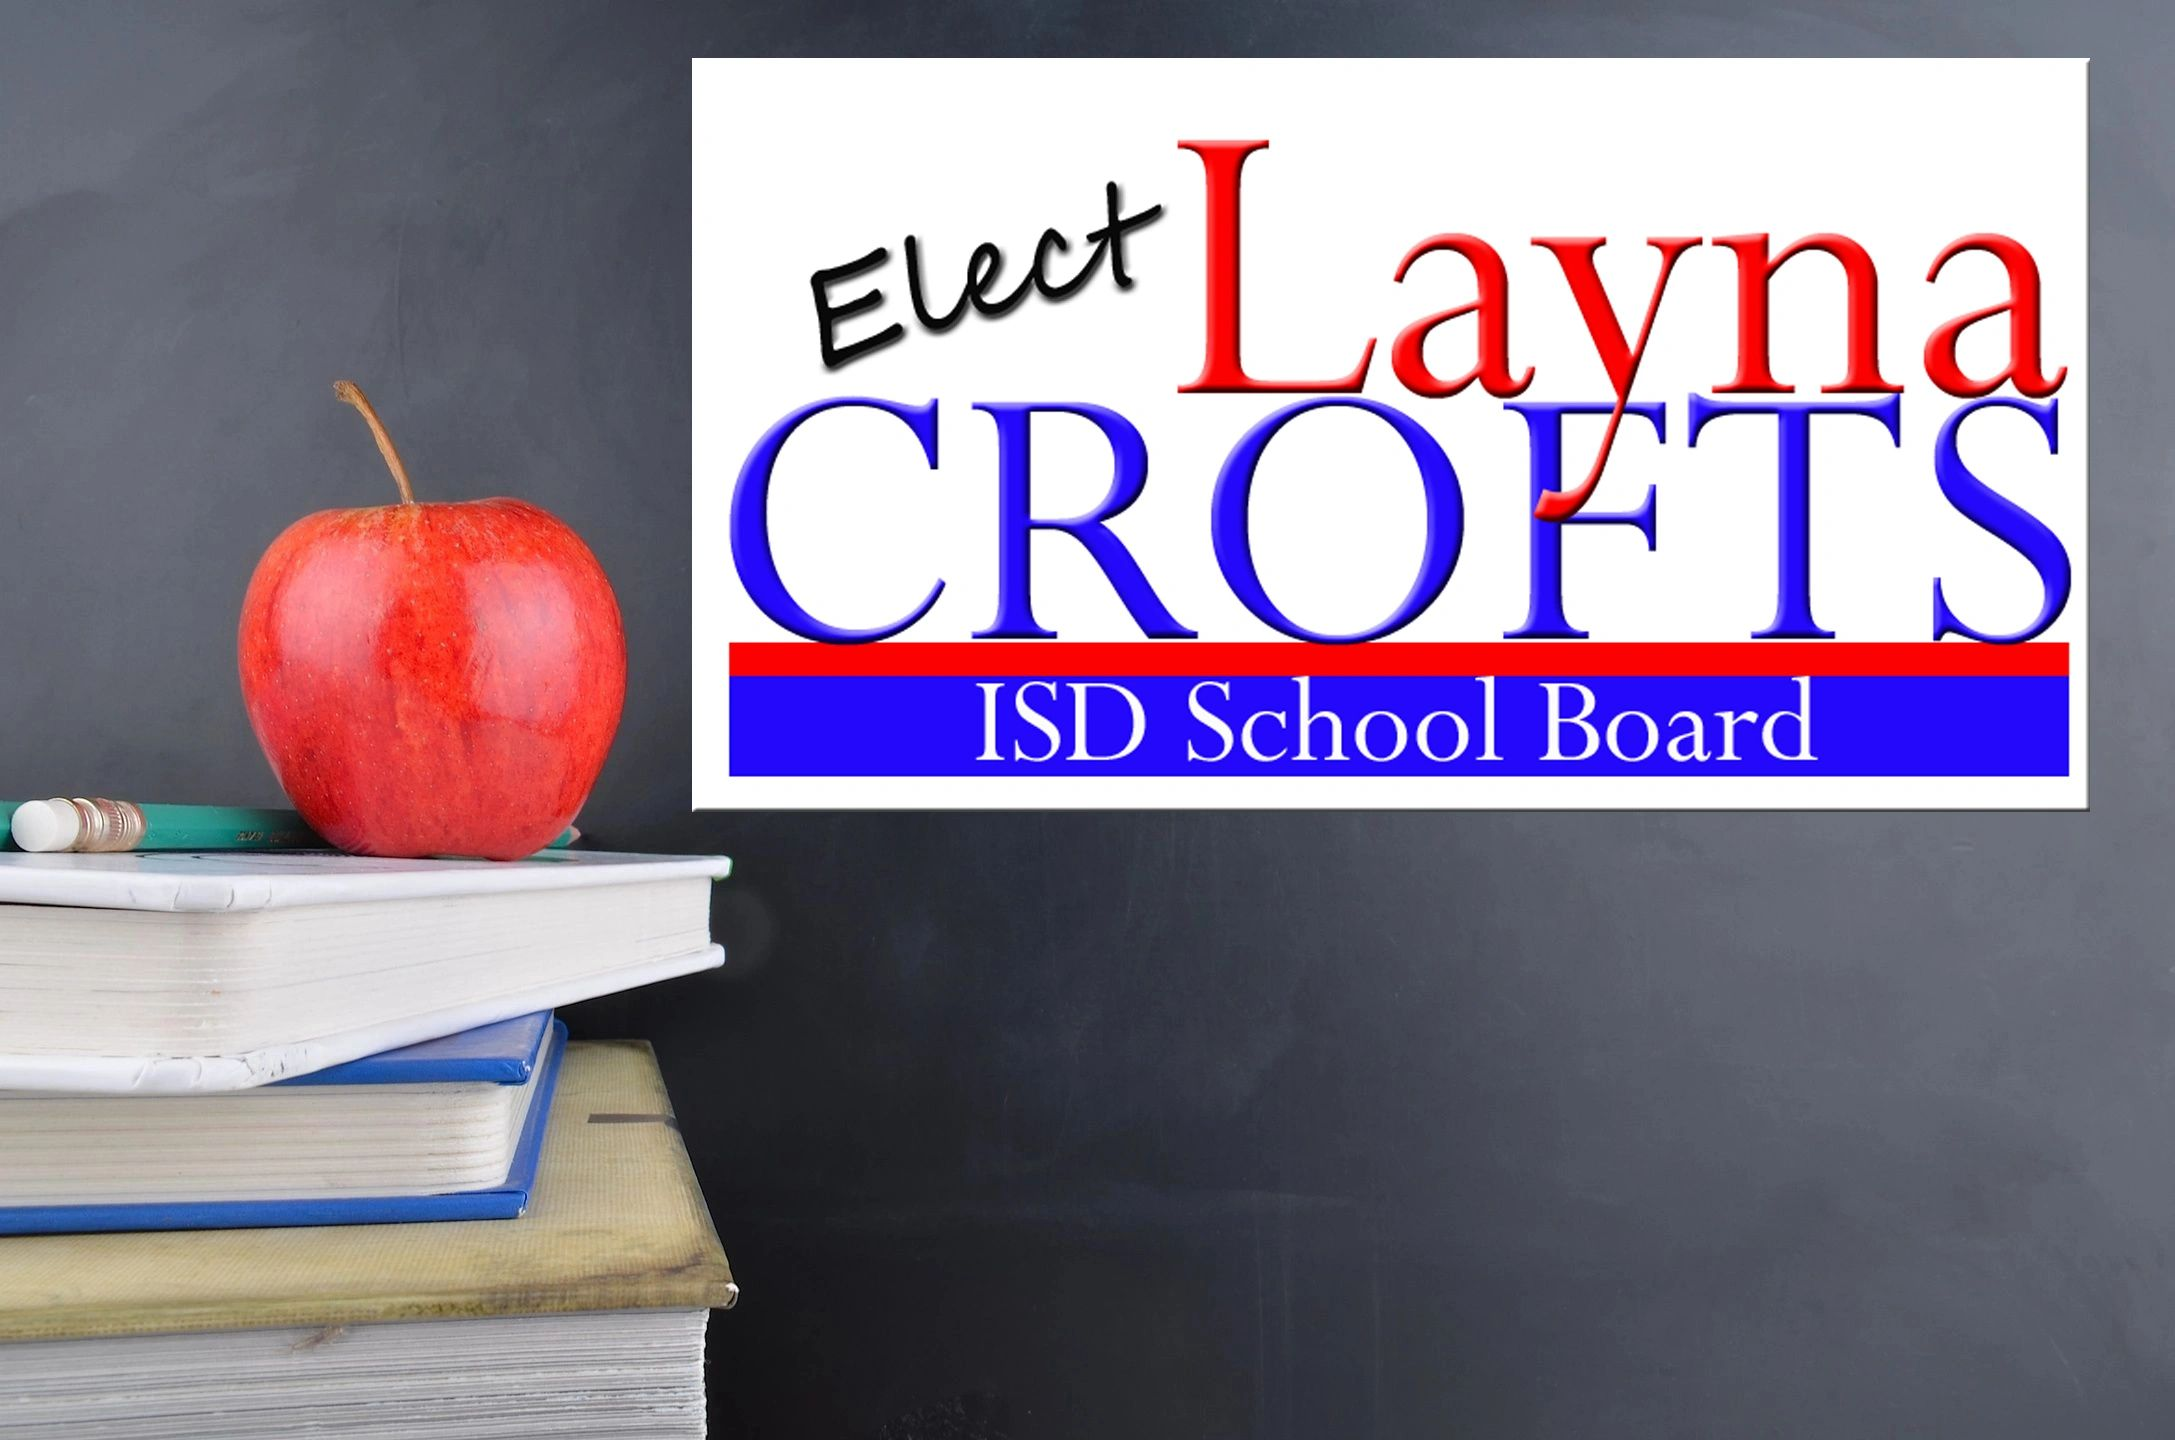 Issaquah school district,  ISD,  Lisa Callan, we can do better, Layna Crofts, VoteLayna